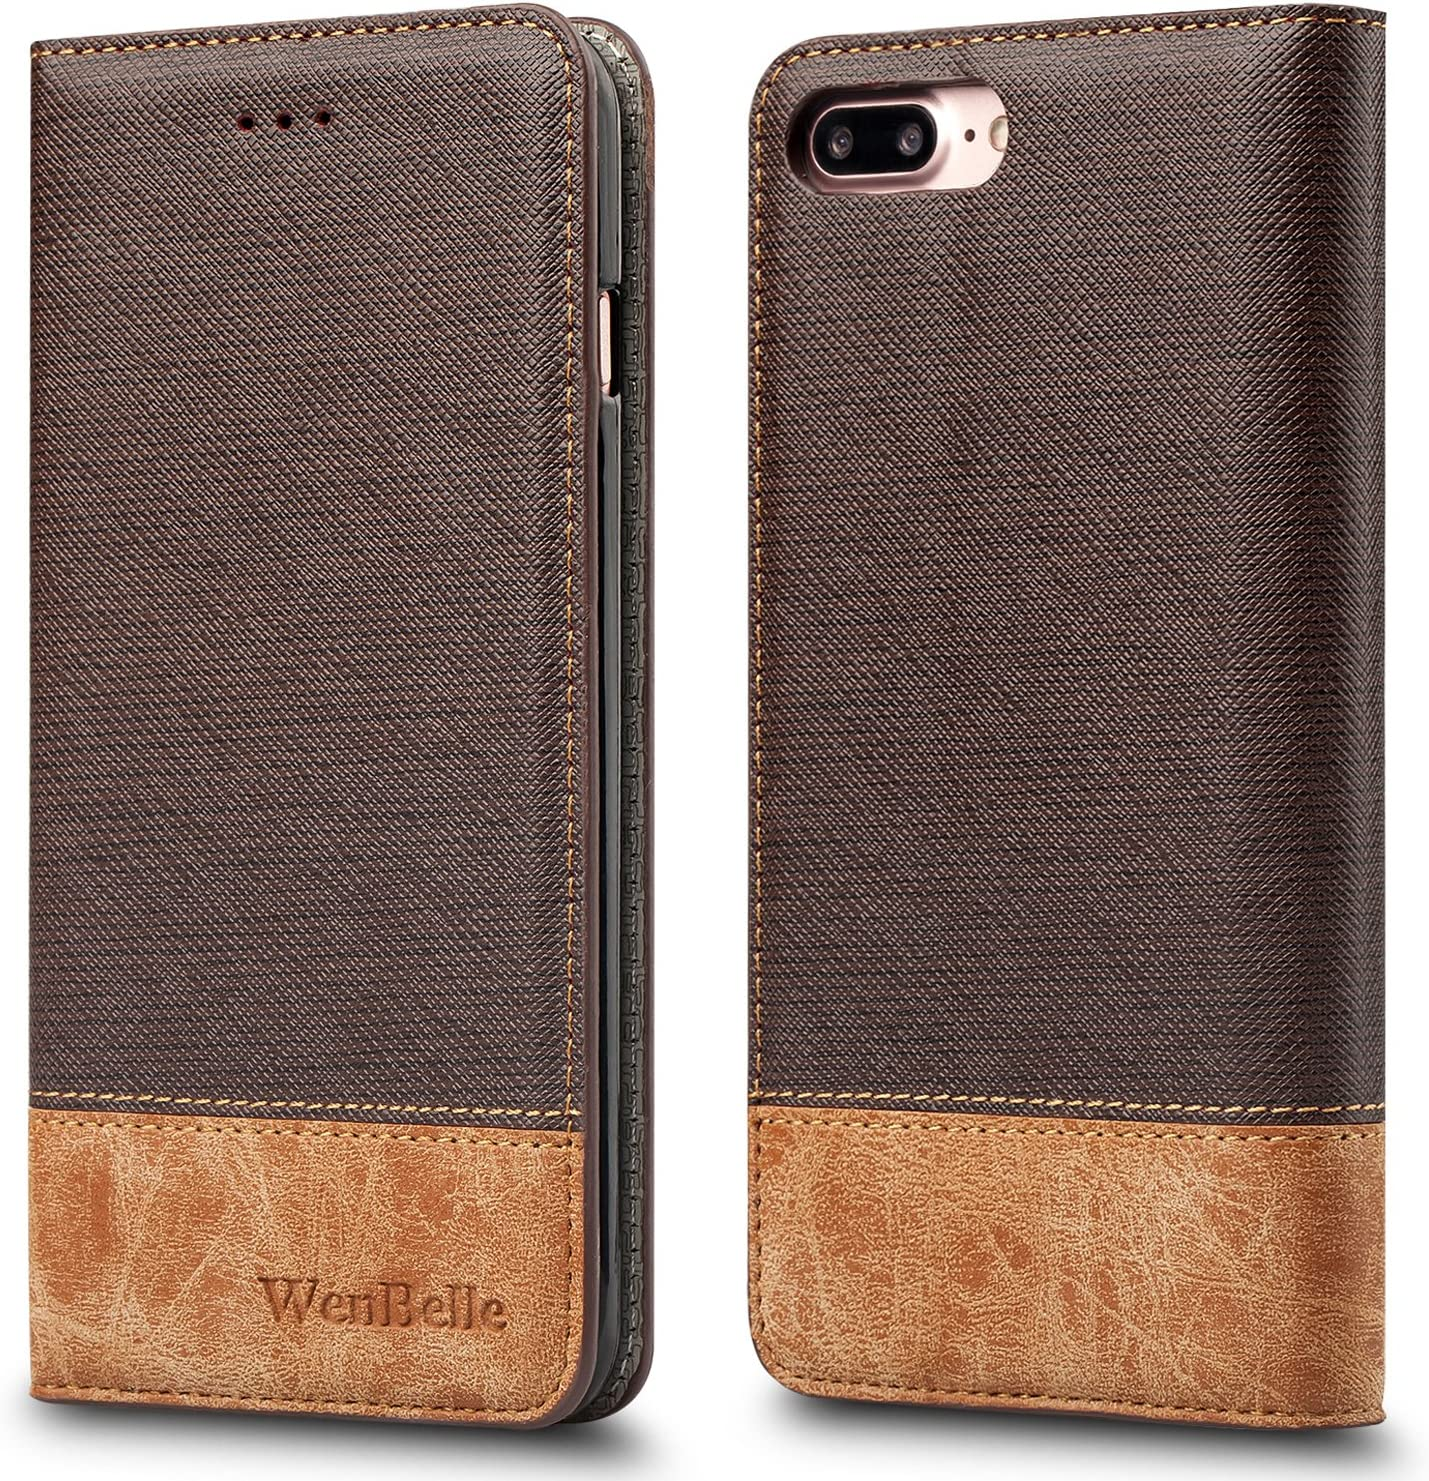 WenBelle for iPhone 7 Plus/iPhone 8 Plus Case, Stand Feature,Premium Soft PU Color Matching Leather Wallet Cover Flip Cases for Apple iPhone 7 Plus/iPhone 8 Plus 5.5 Inch (Brown)